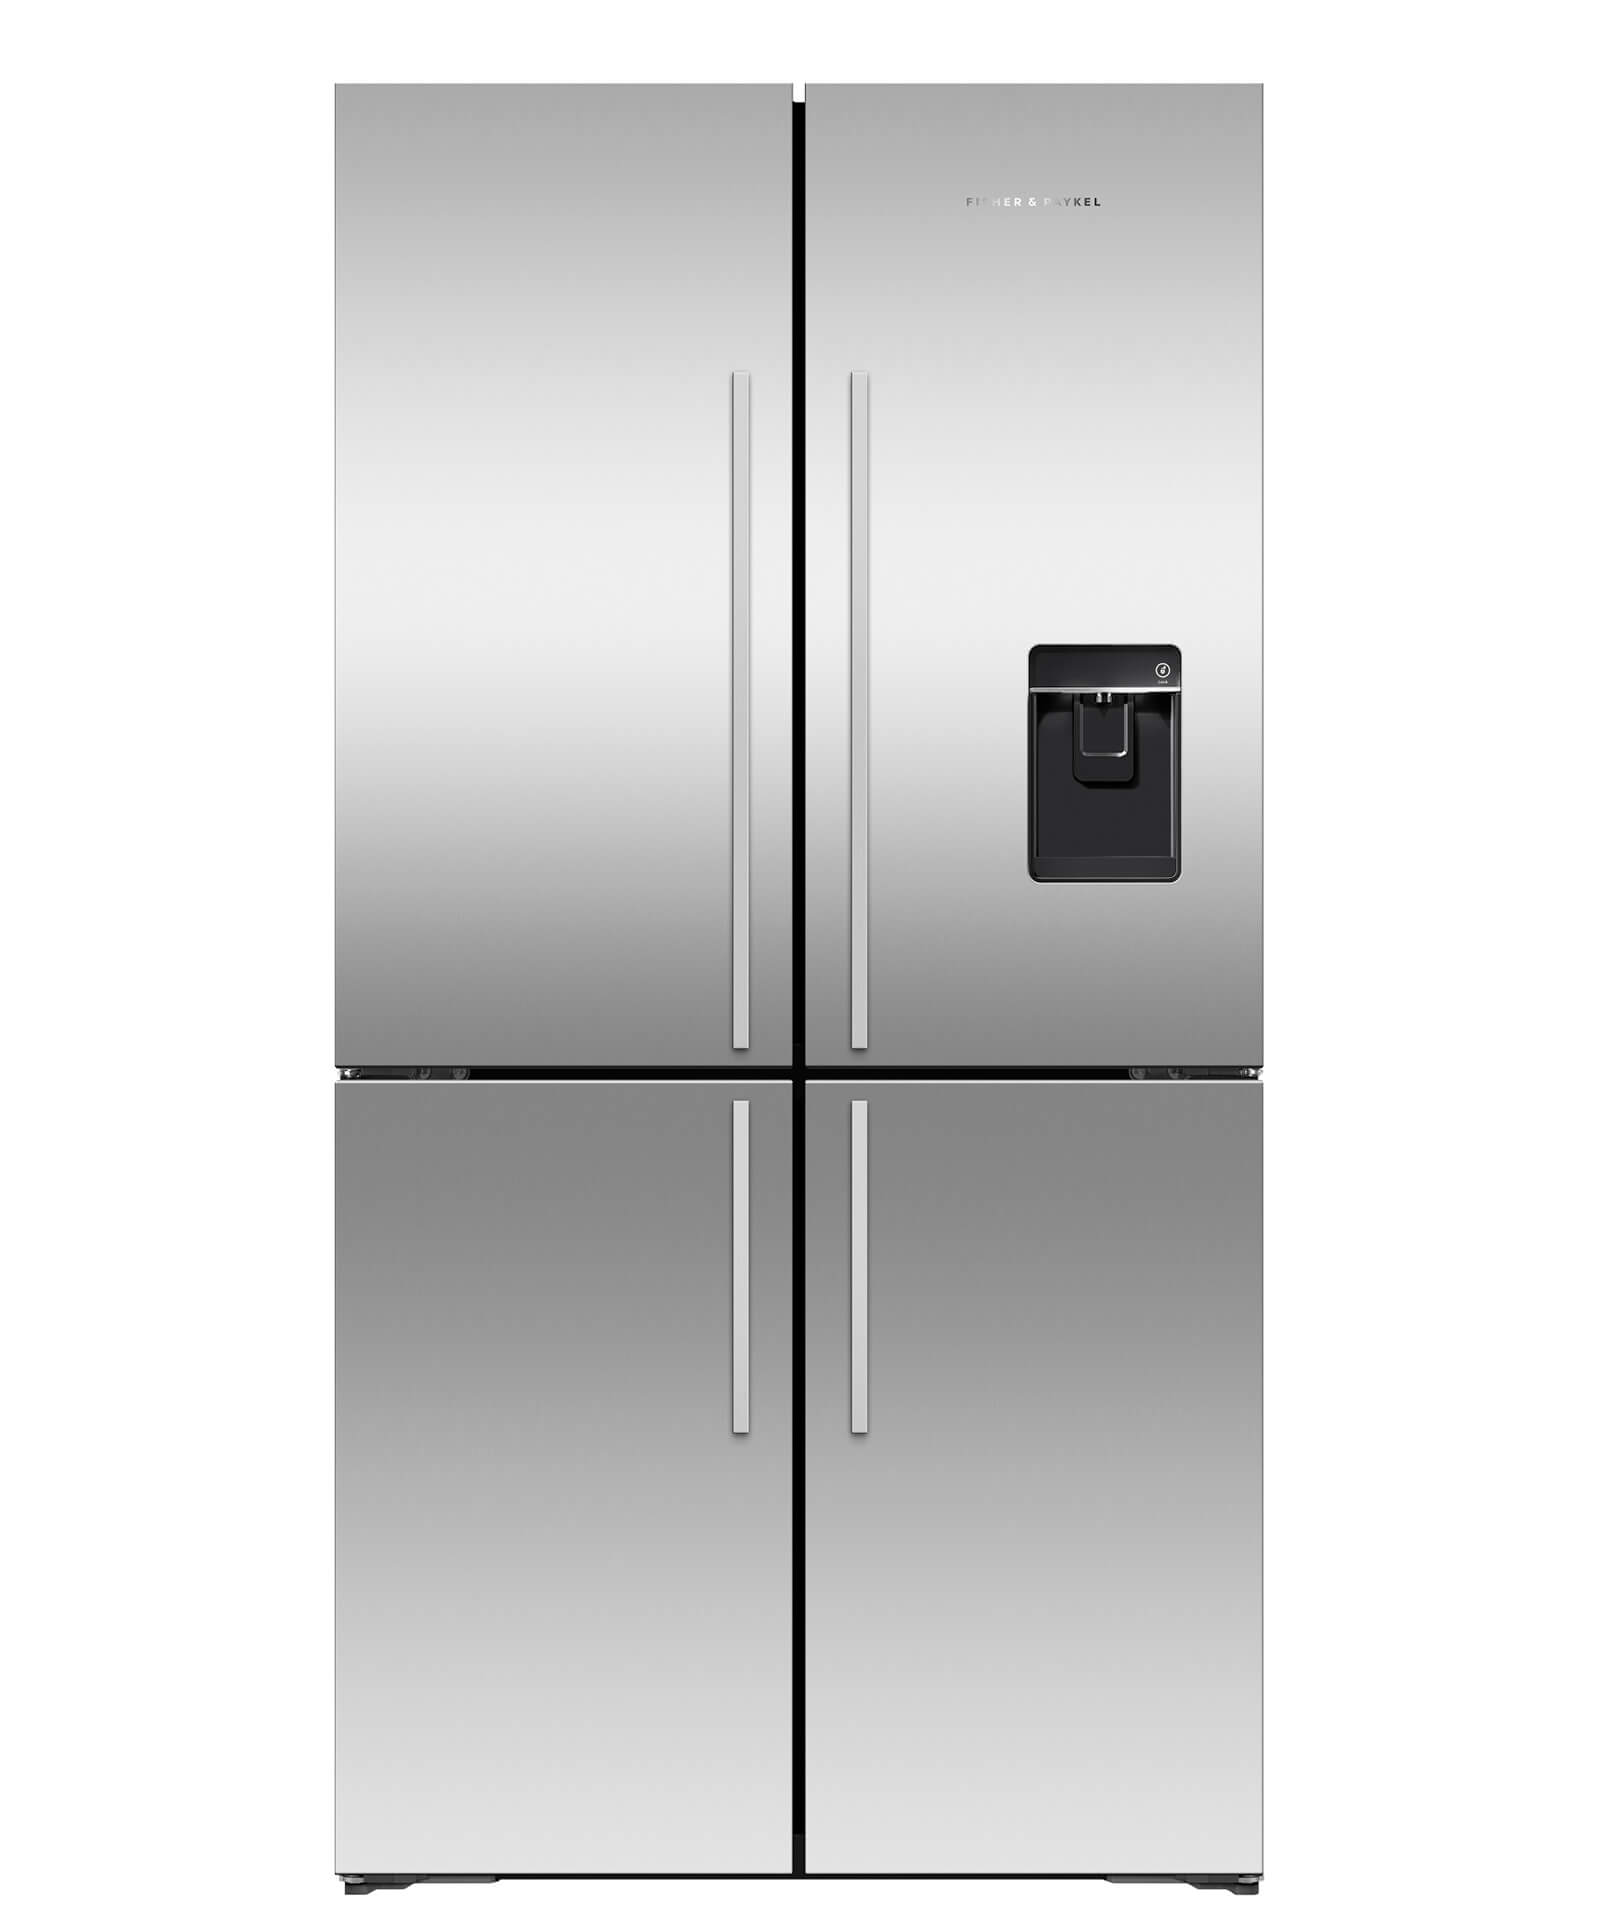 RF605QDUVX1 - ActiveSmart™ Fridge - 905mm Quad Door with Ice & Water 605L - 24909